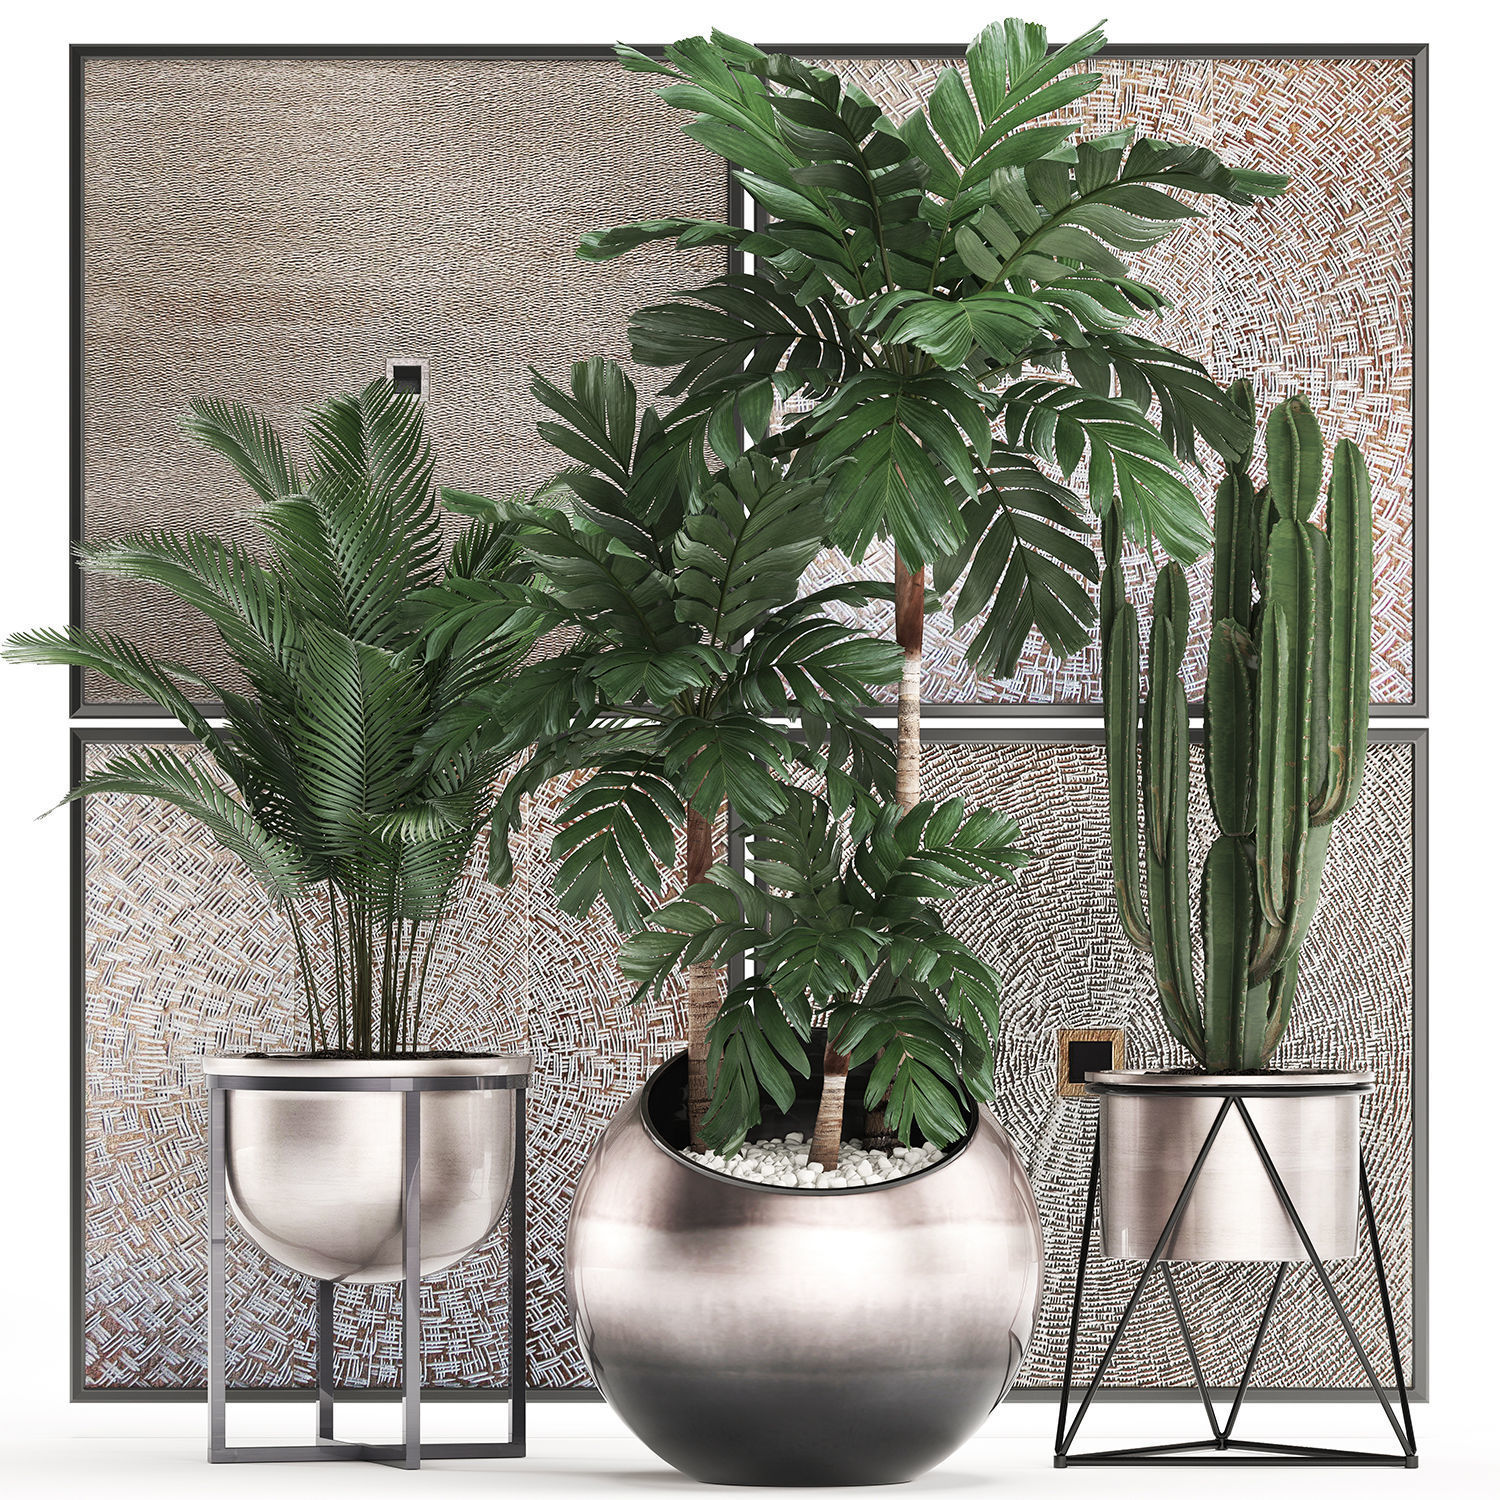 Decorative plants in flower pots for the interior 470